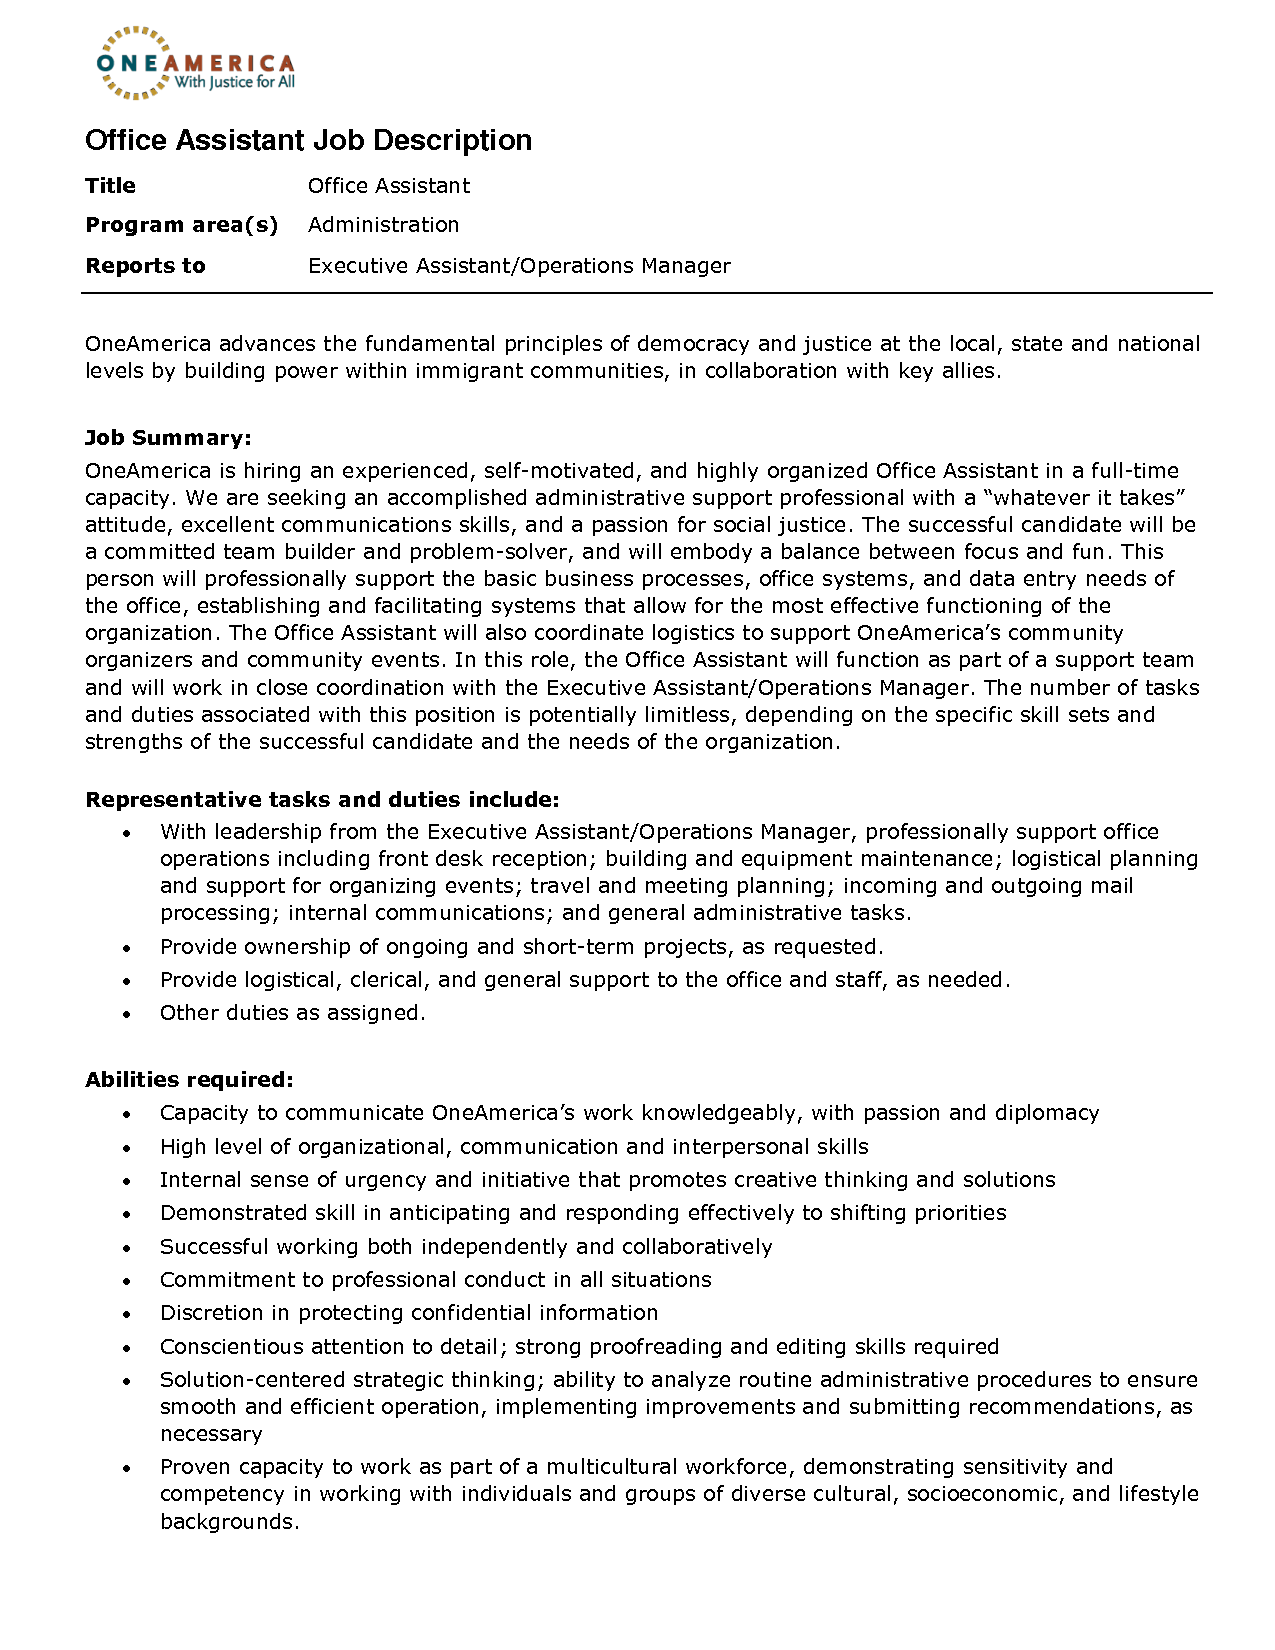 Resume Office Assistant Job Description Samplebusinessresume Com